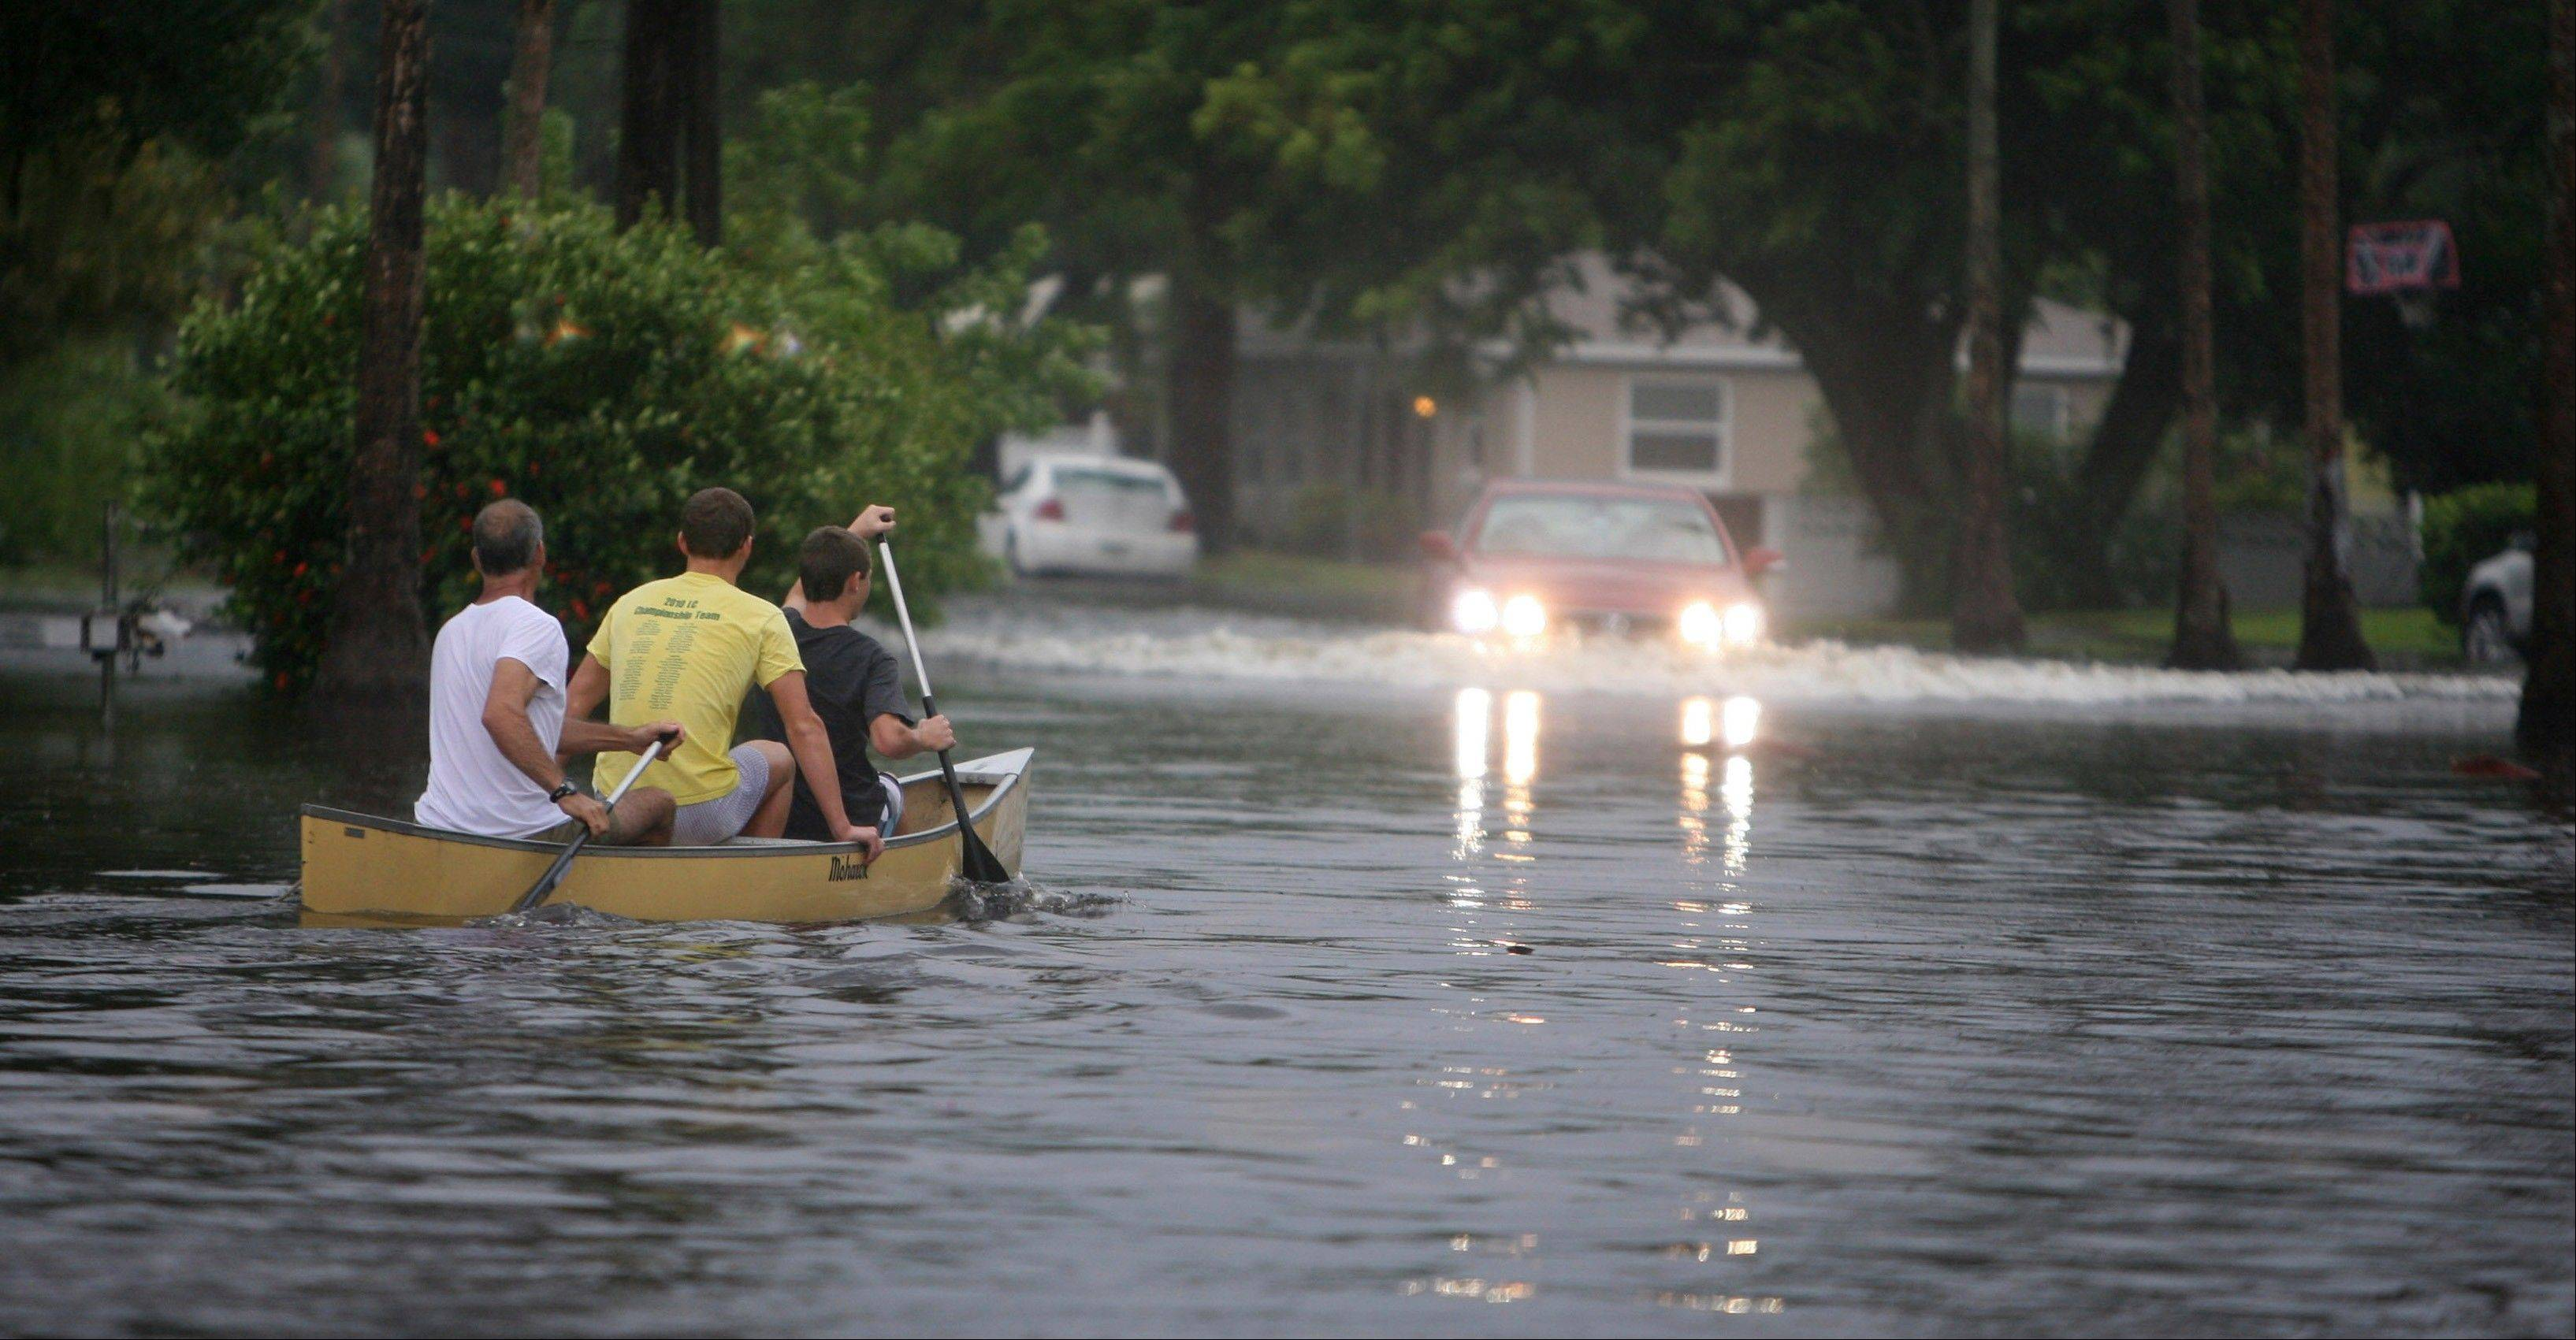 Canoe-goers navigate flooded streets as flooding continues to worsen and Tropical Storm Debby pounds the Tampa Bay, Fla., area Sunday, June 24, 2012. Tropical Storm Debby continued to churn in the Gulf of Mexico.